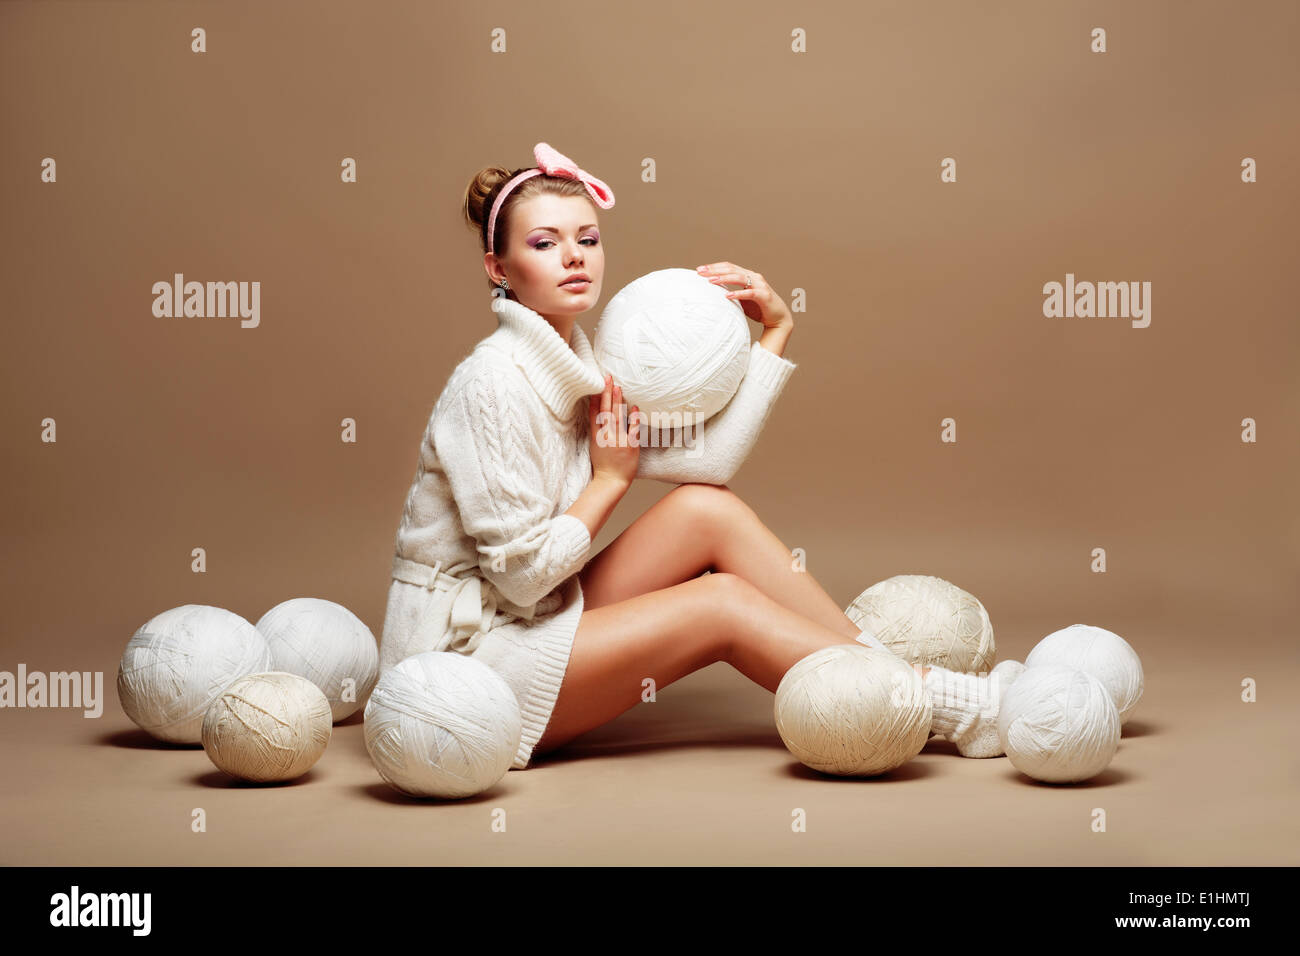 Knitting. Sewing. Woman in White Knitted Clothing with Bulk of Fluffy Clews of Yarn - Stock Image